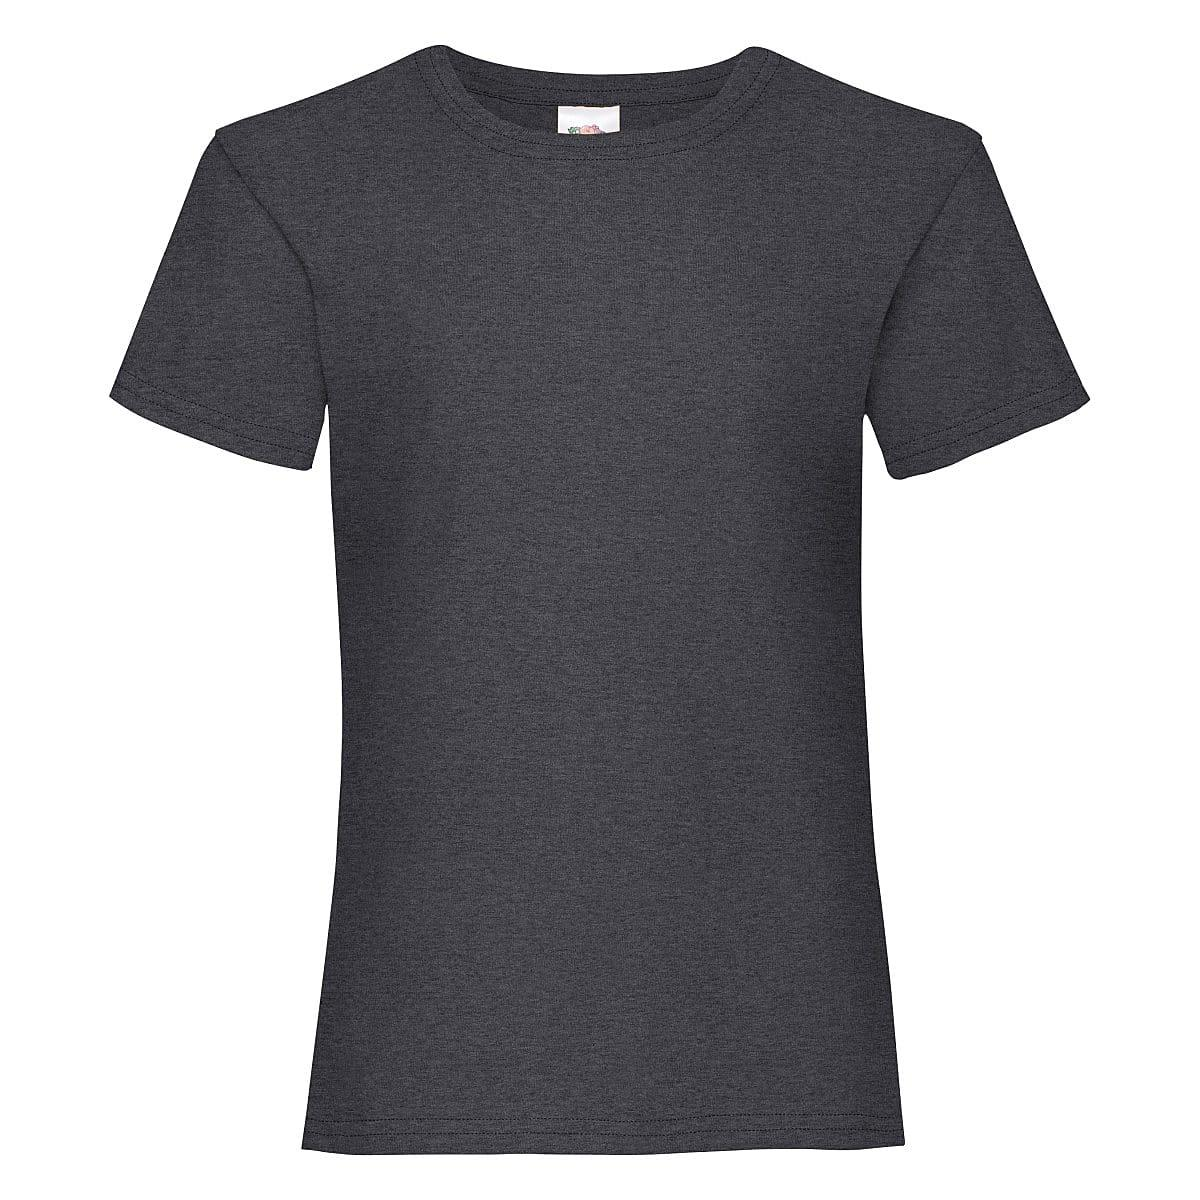 Fruit Of The Loom Girls Valueweight T-Shirt in Dark Heather (Product Code: 61005)